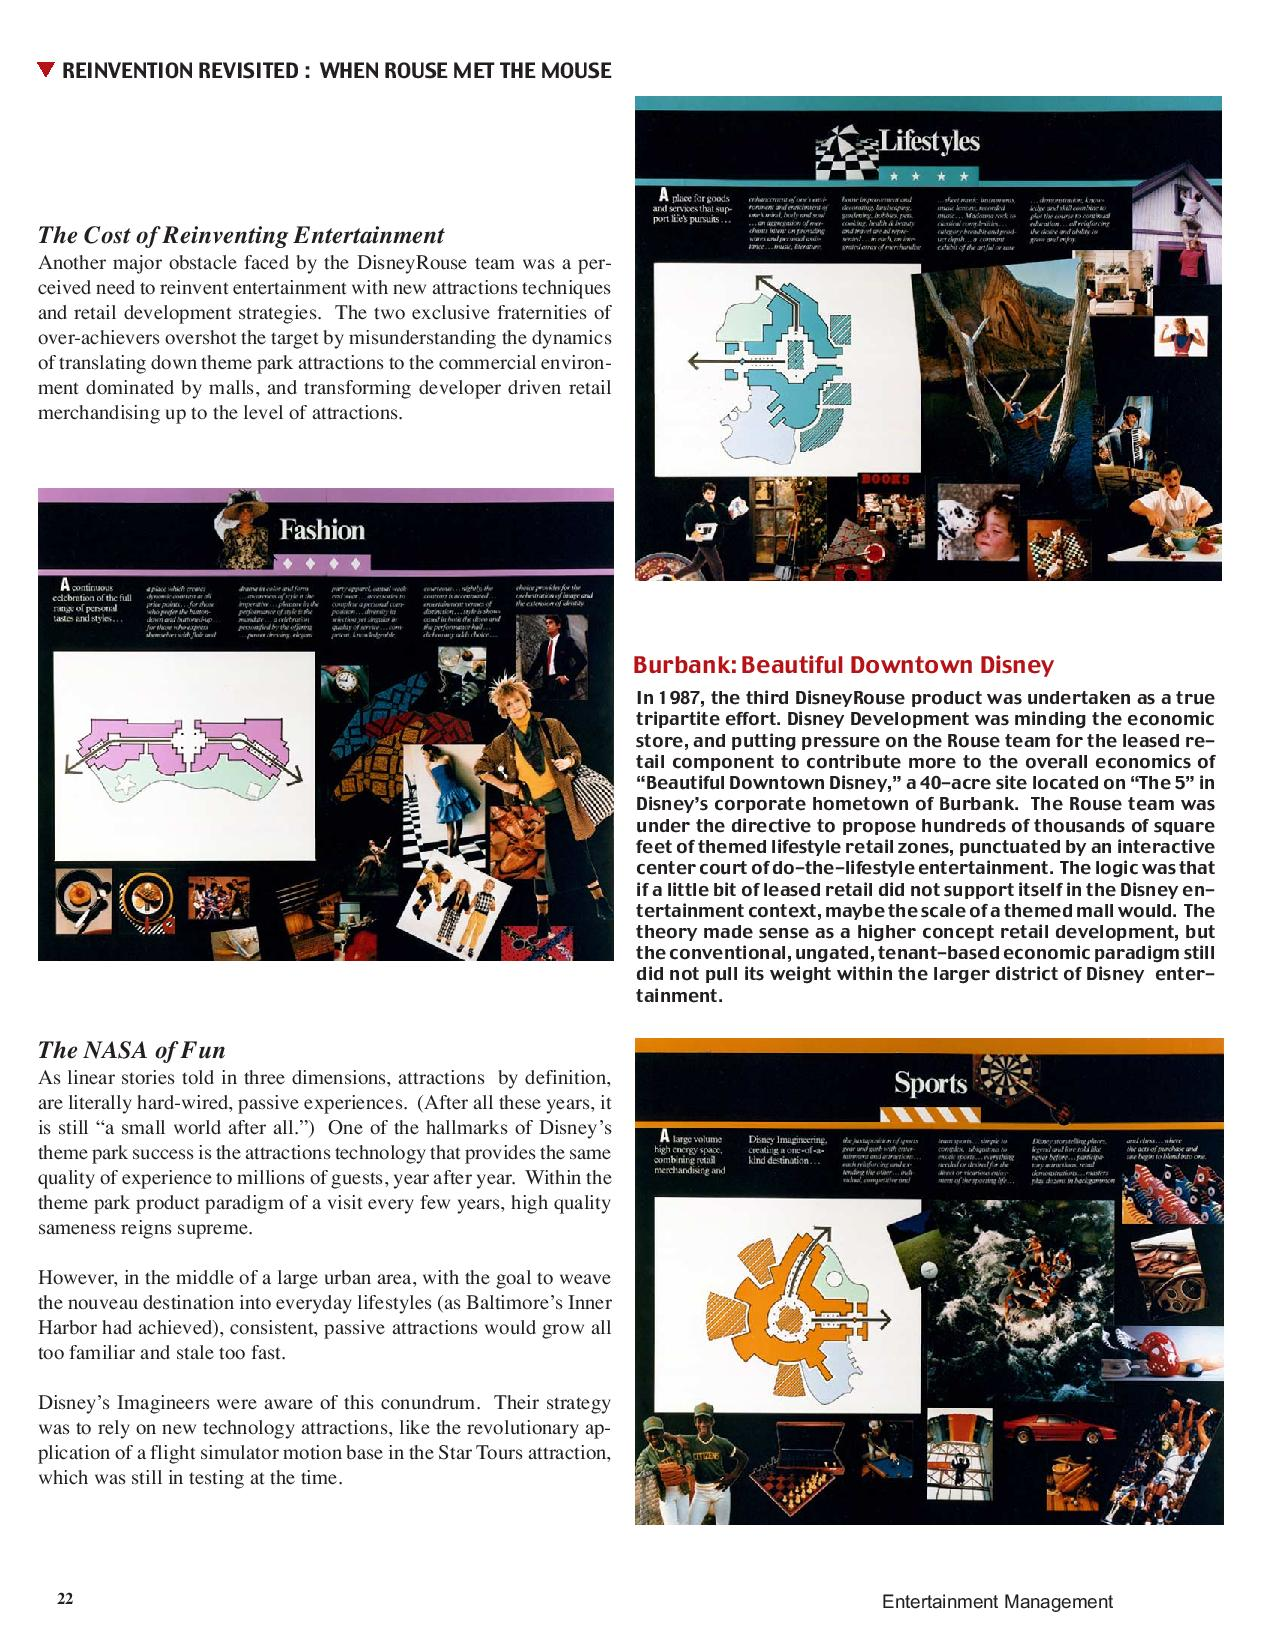 Rouse+Meets+the+Mouse copy-page-006.jpg